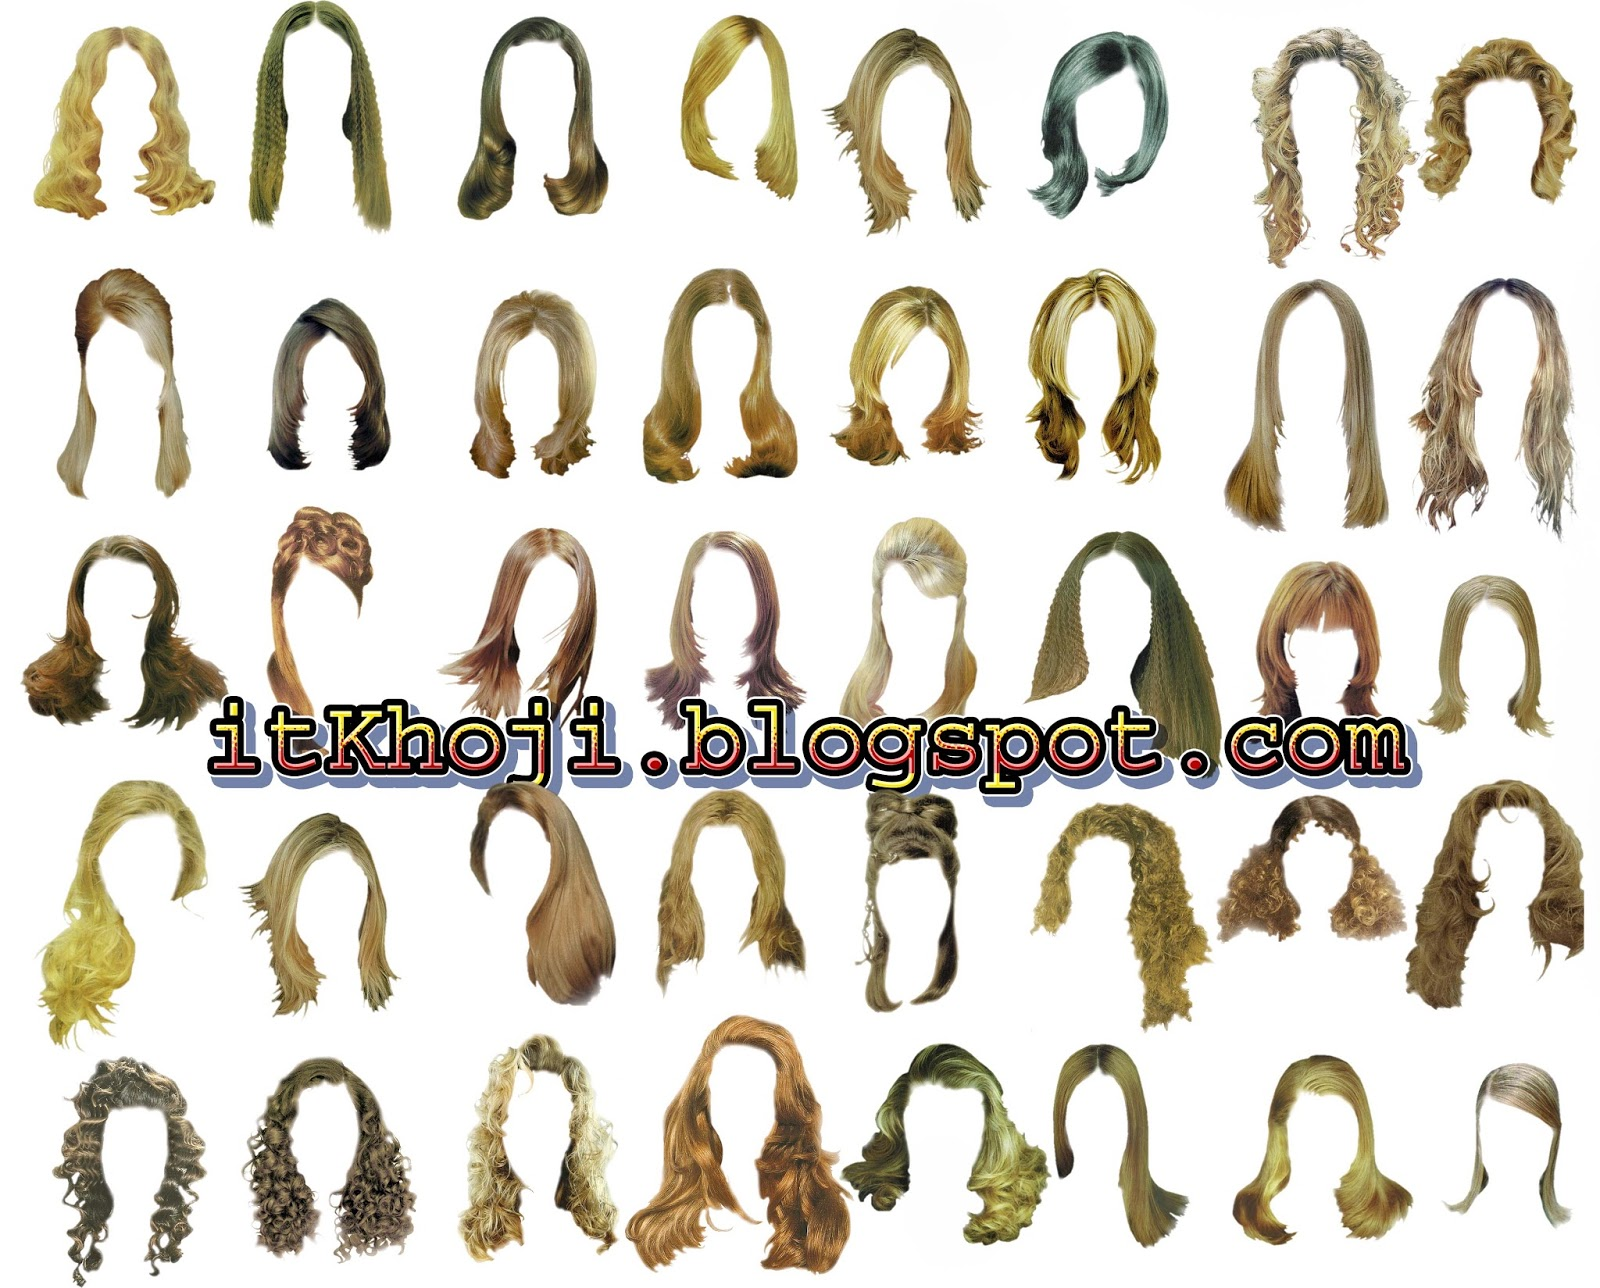 latest stylish hair styles psd free download for men & women